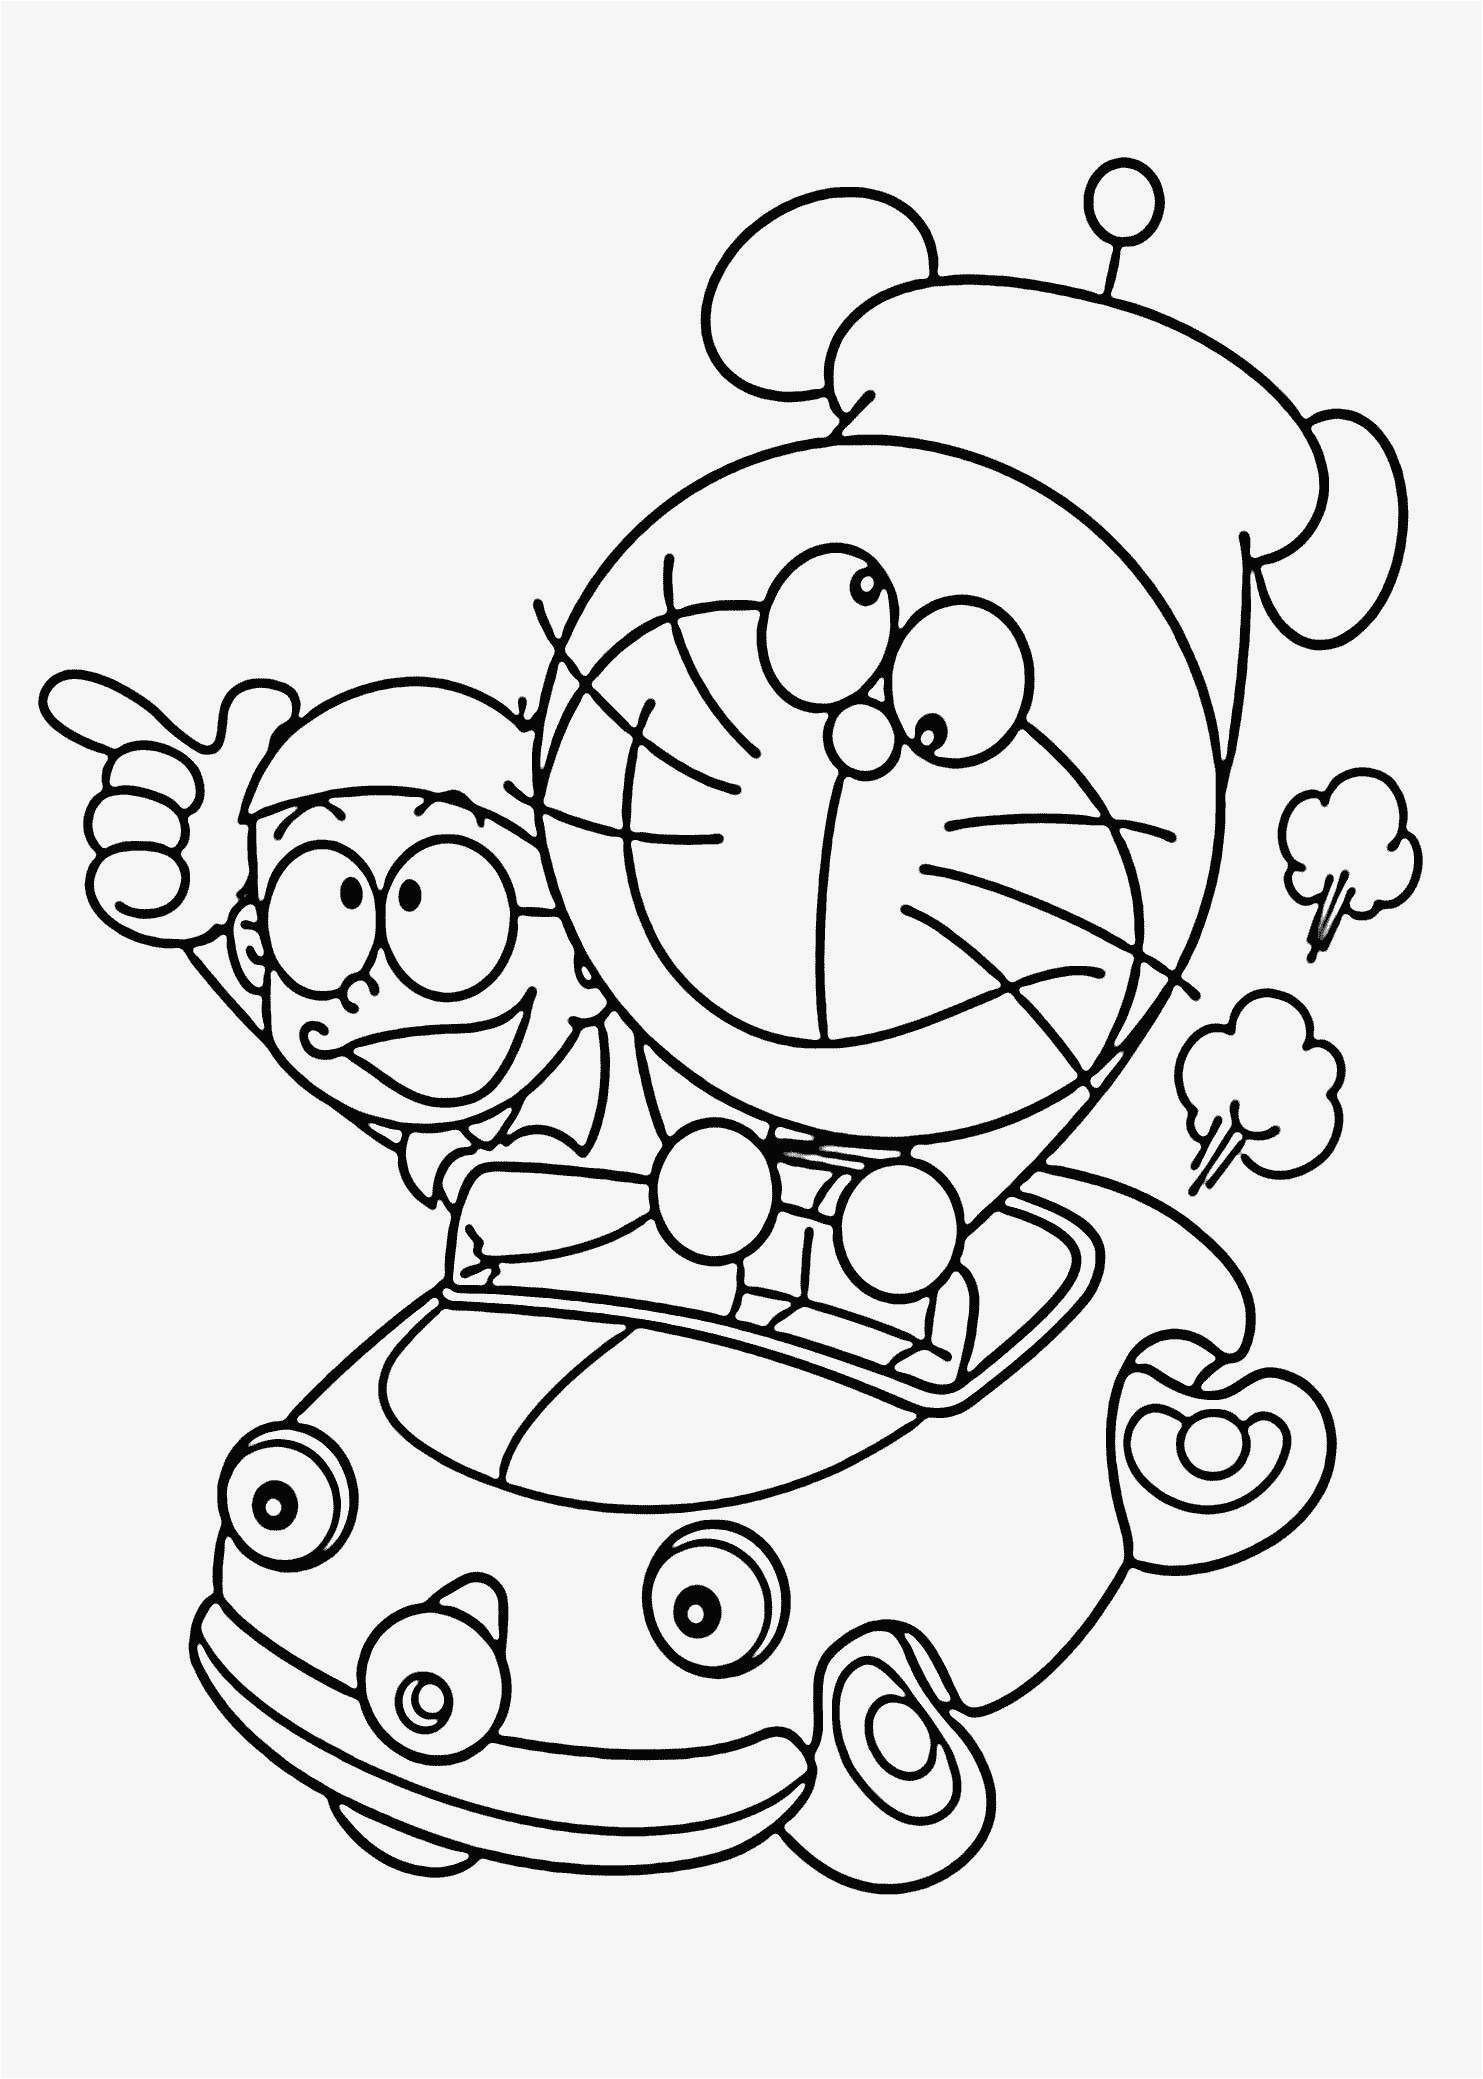 christmas-coloring-book-online-with-sample-pages-you-can-color-line